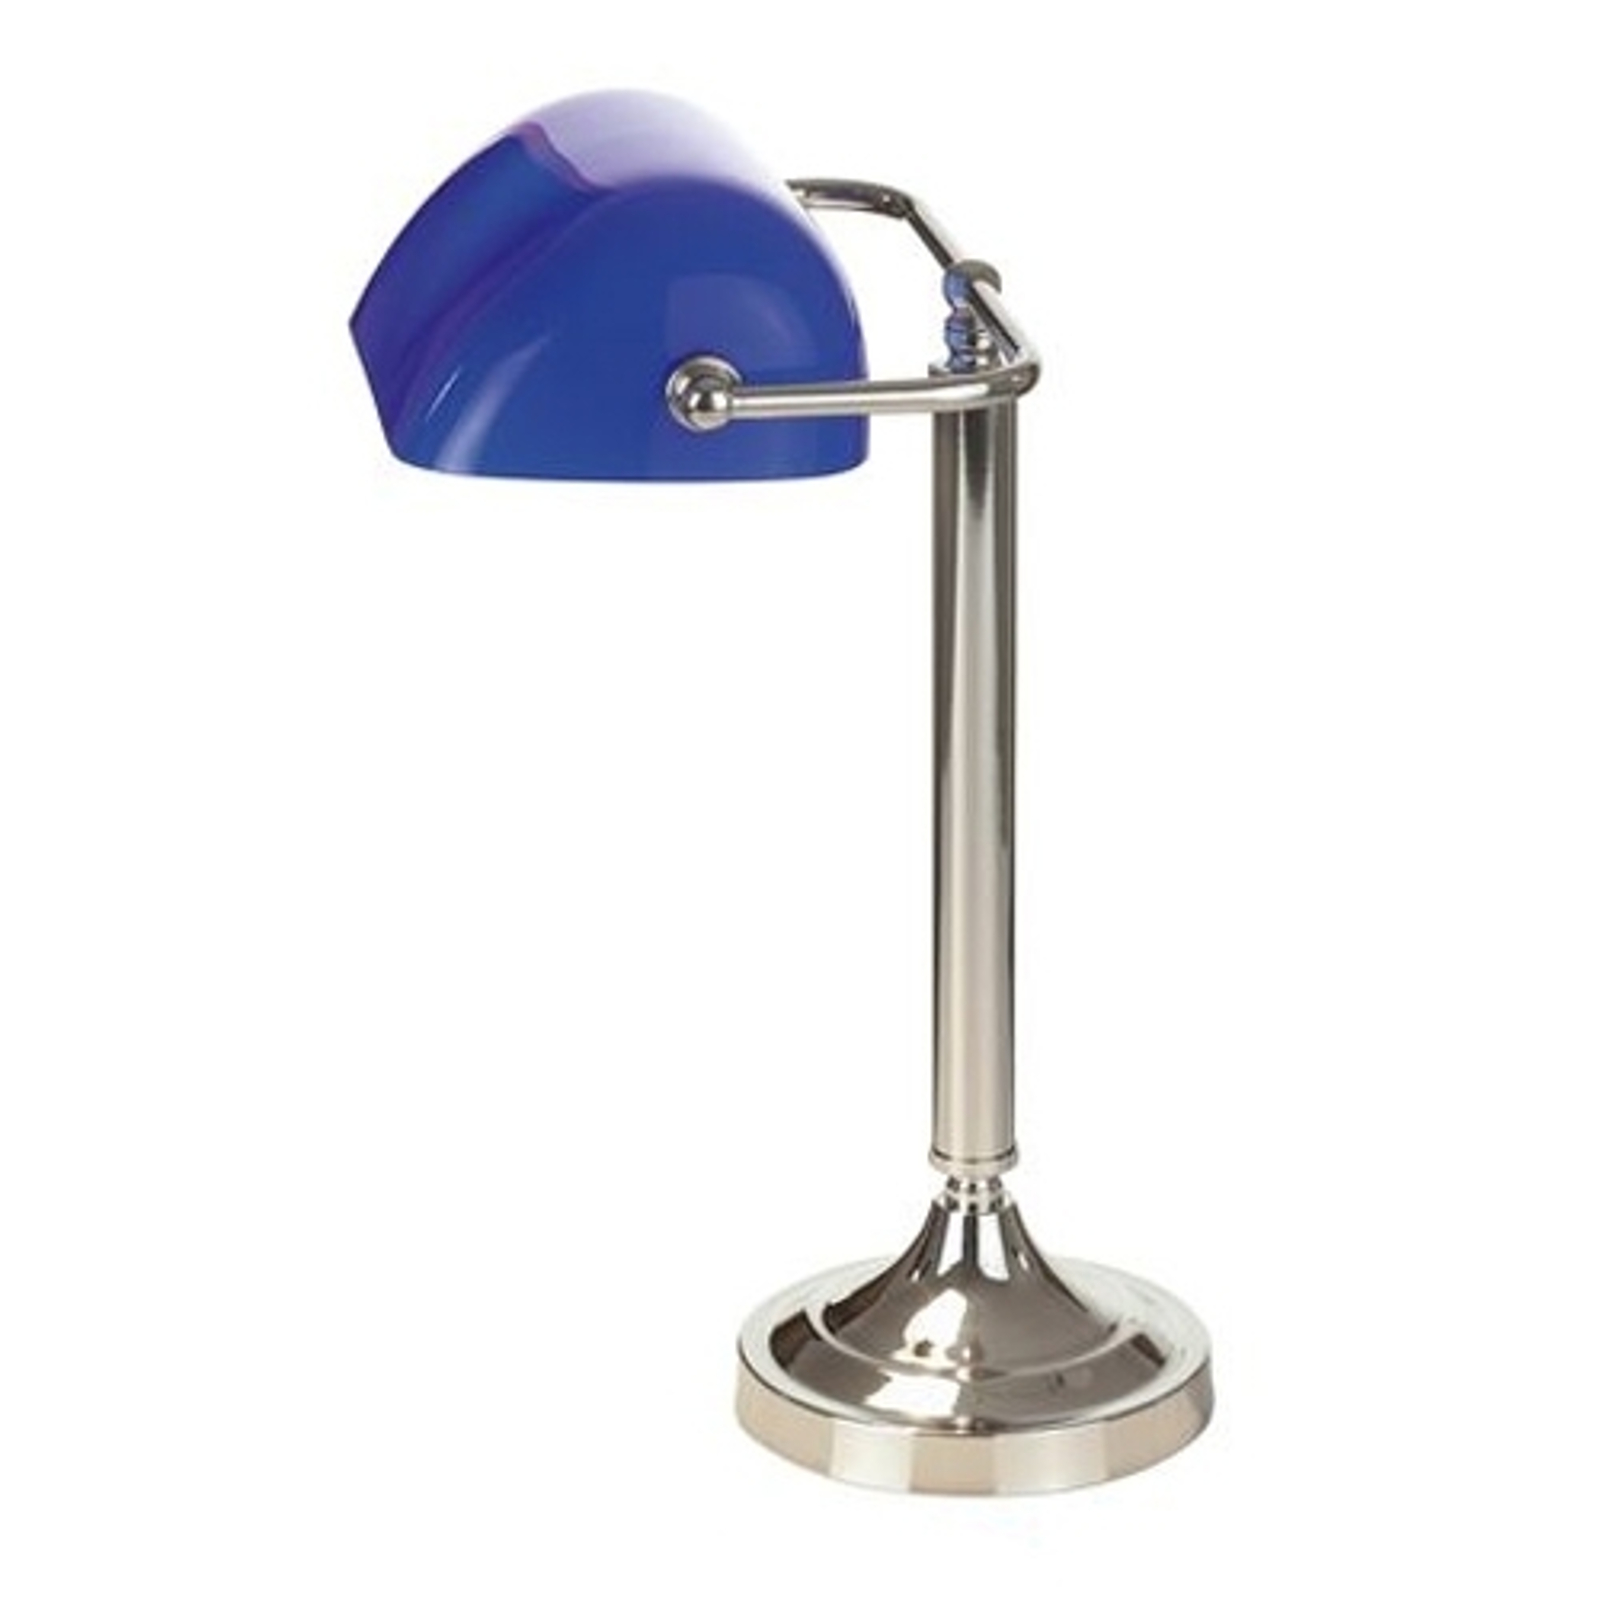 Typical banker table lamp TINEKE, blue_1032097_1